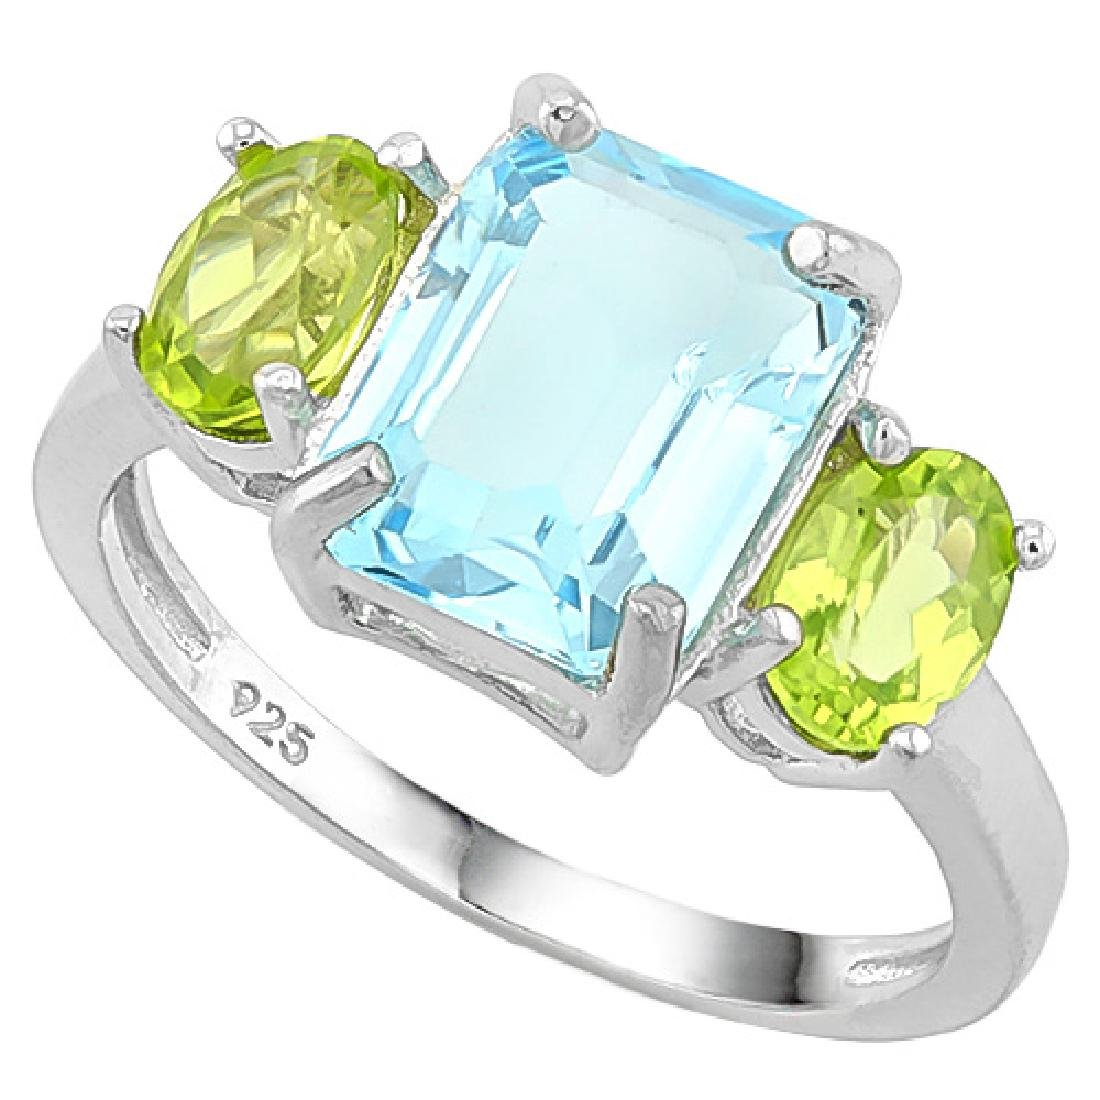 AMAZING BLUE TOPAZ/PERIDOT PRINCESS CUT RING